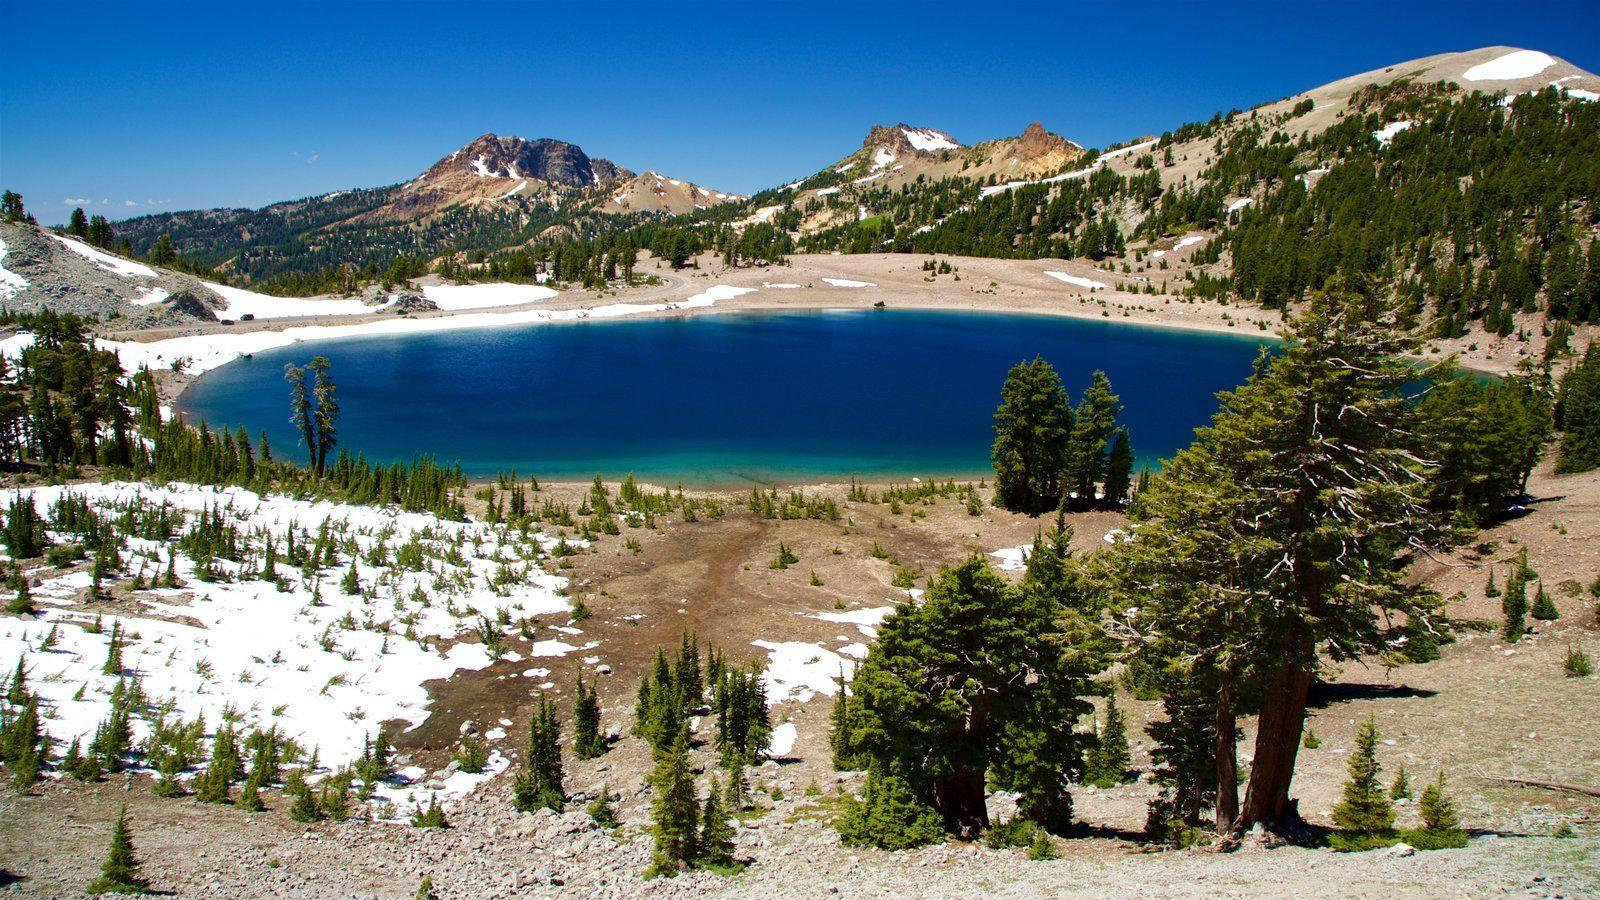 Peaceful Pictures: View Images of Lassen Volcanic National Park